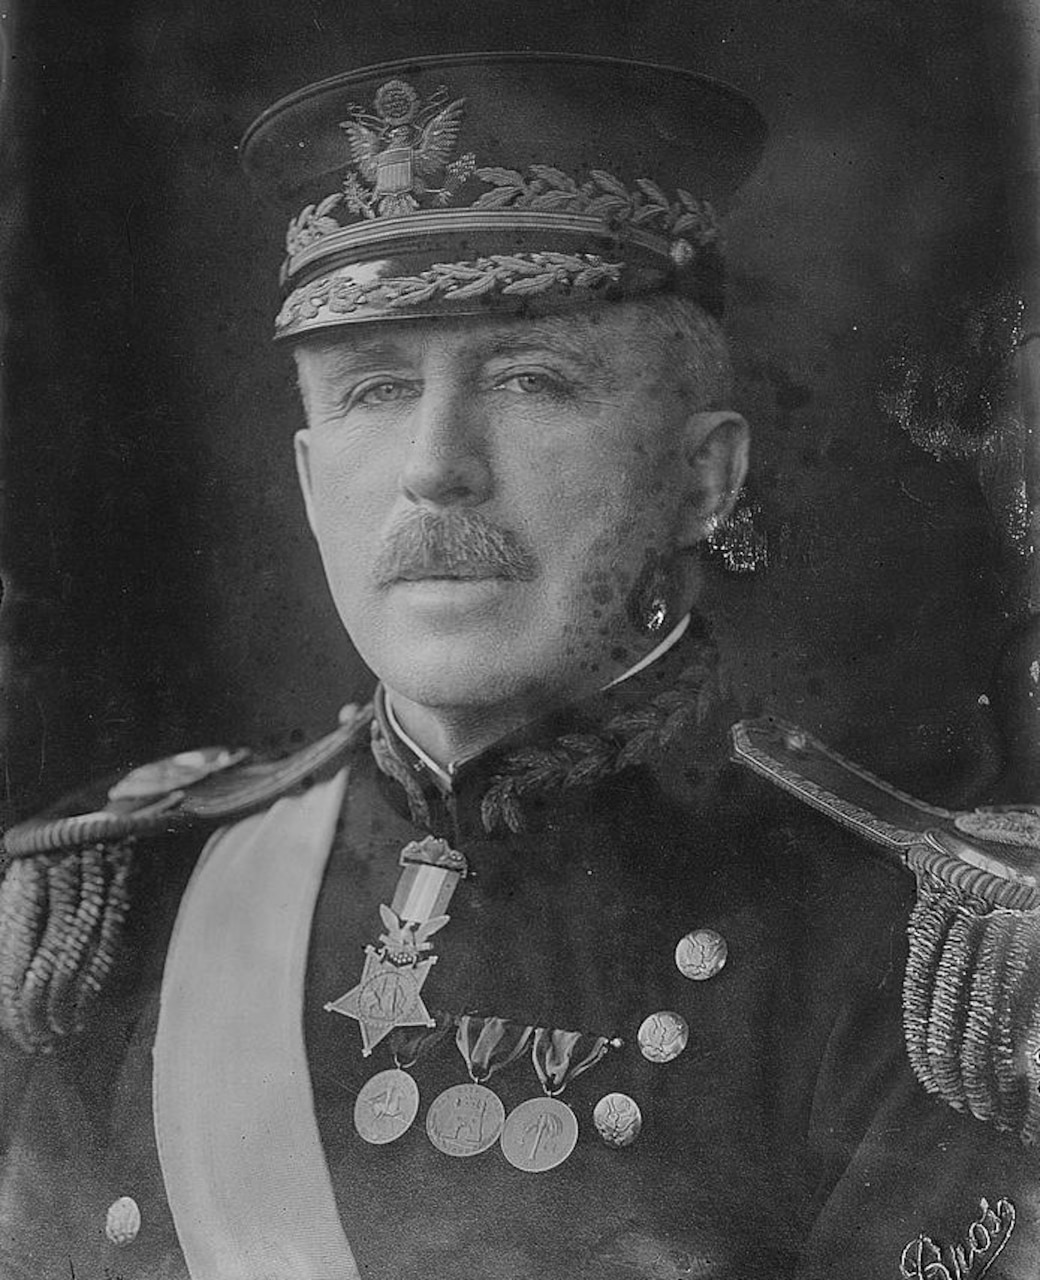 A man in military dress with many decorations looks at the camera.